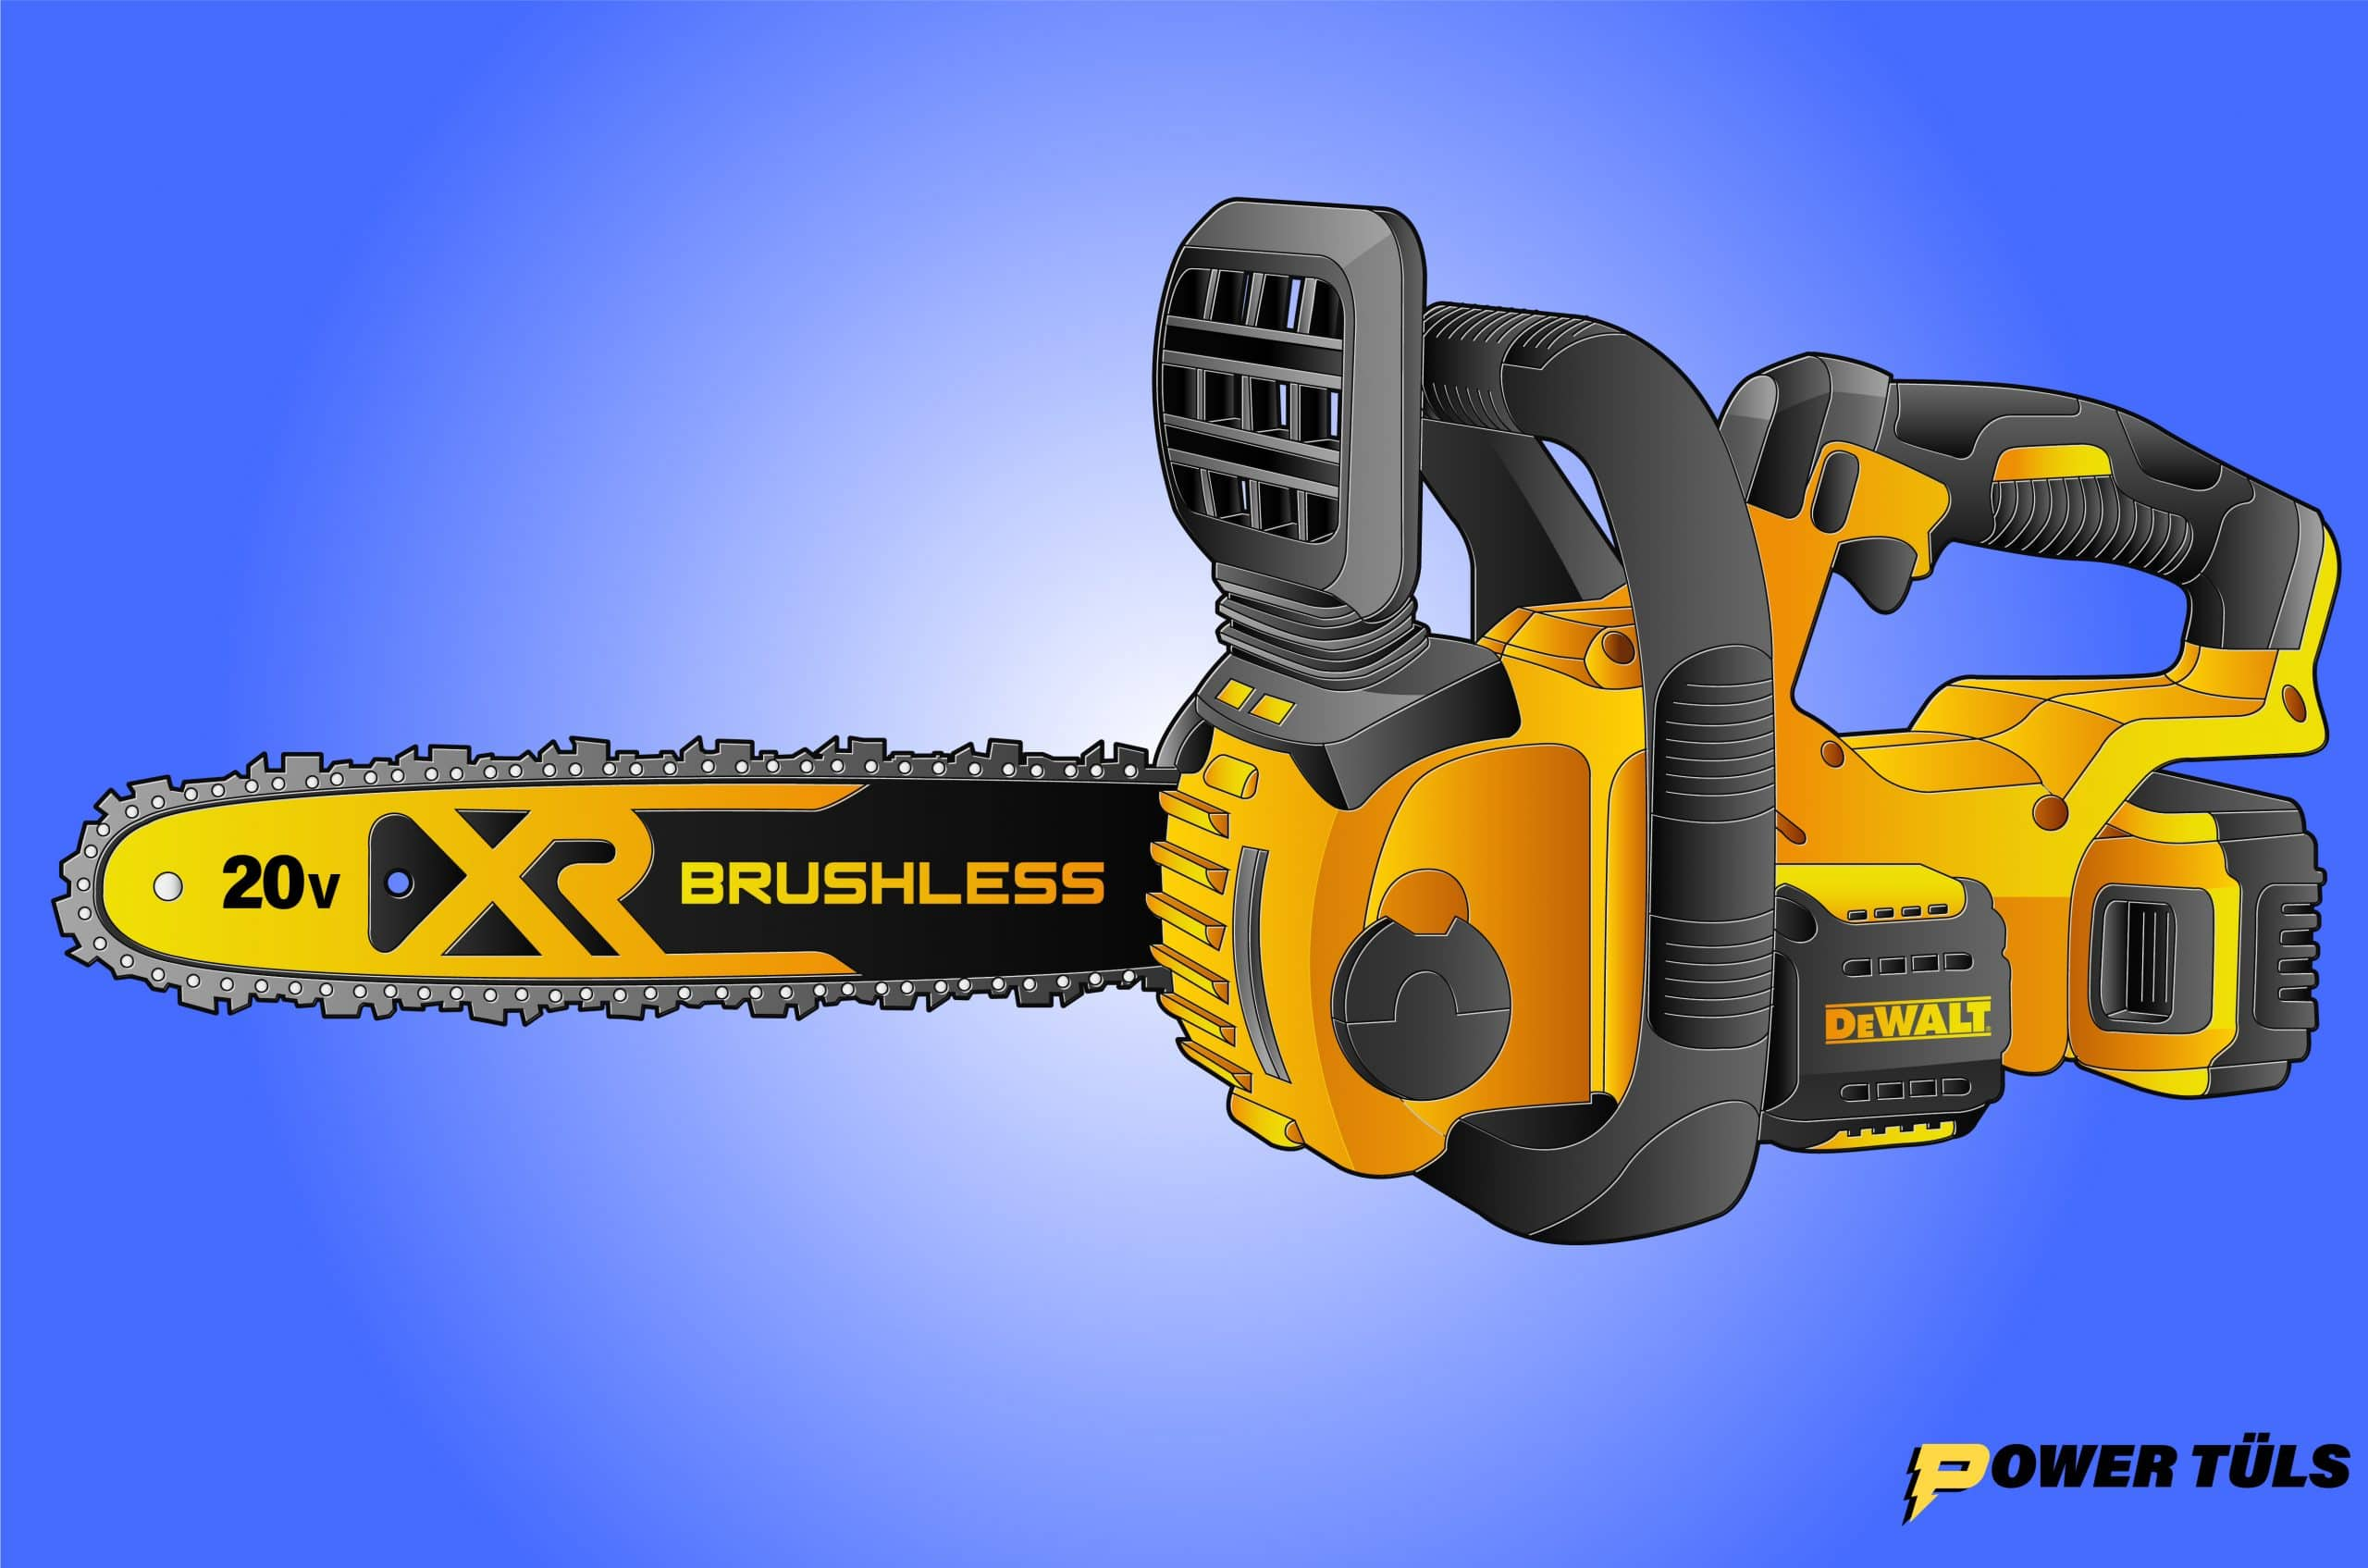 Dewalt 20v Chainsaw Illustration